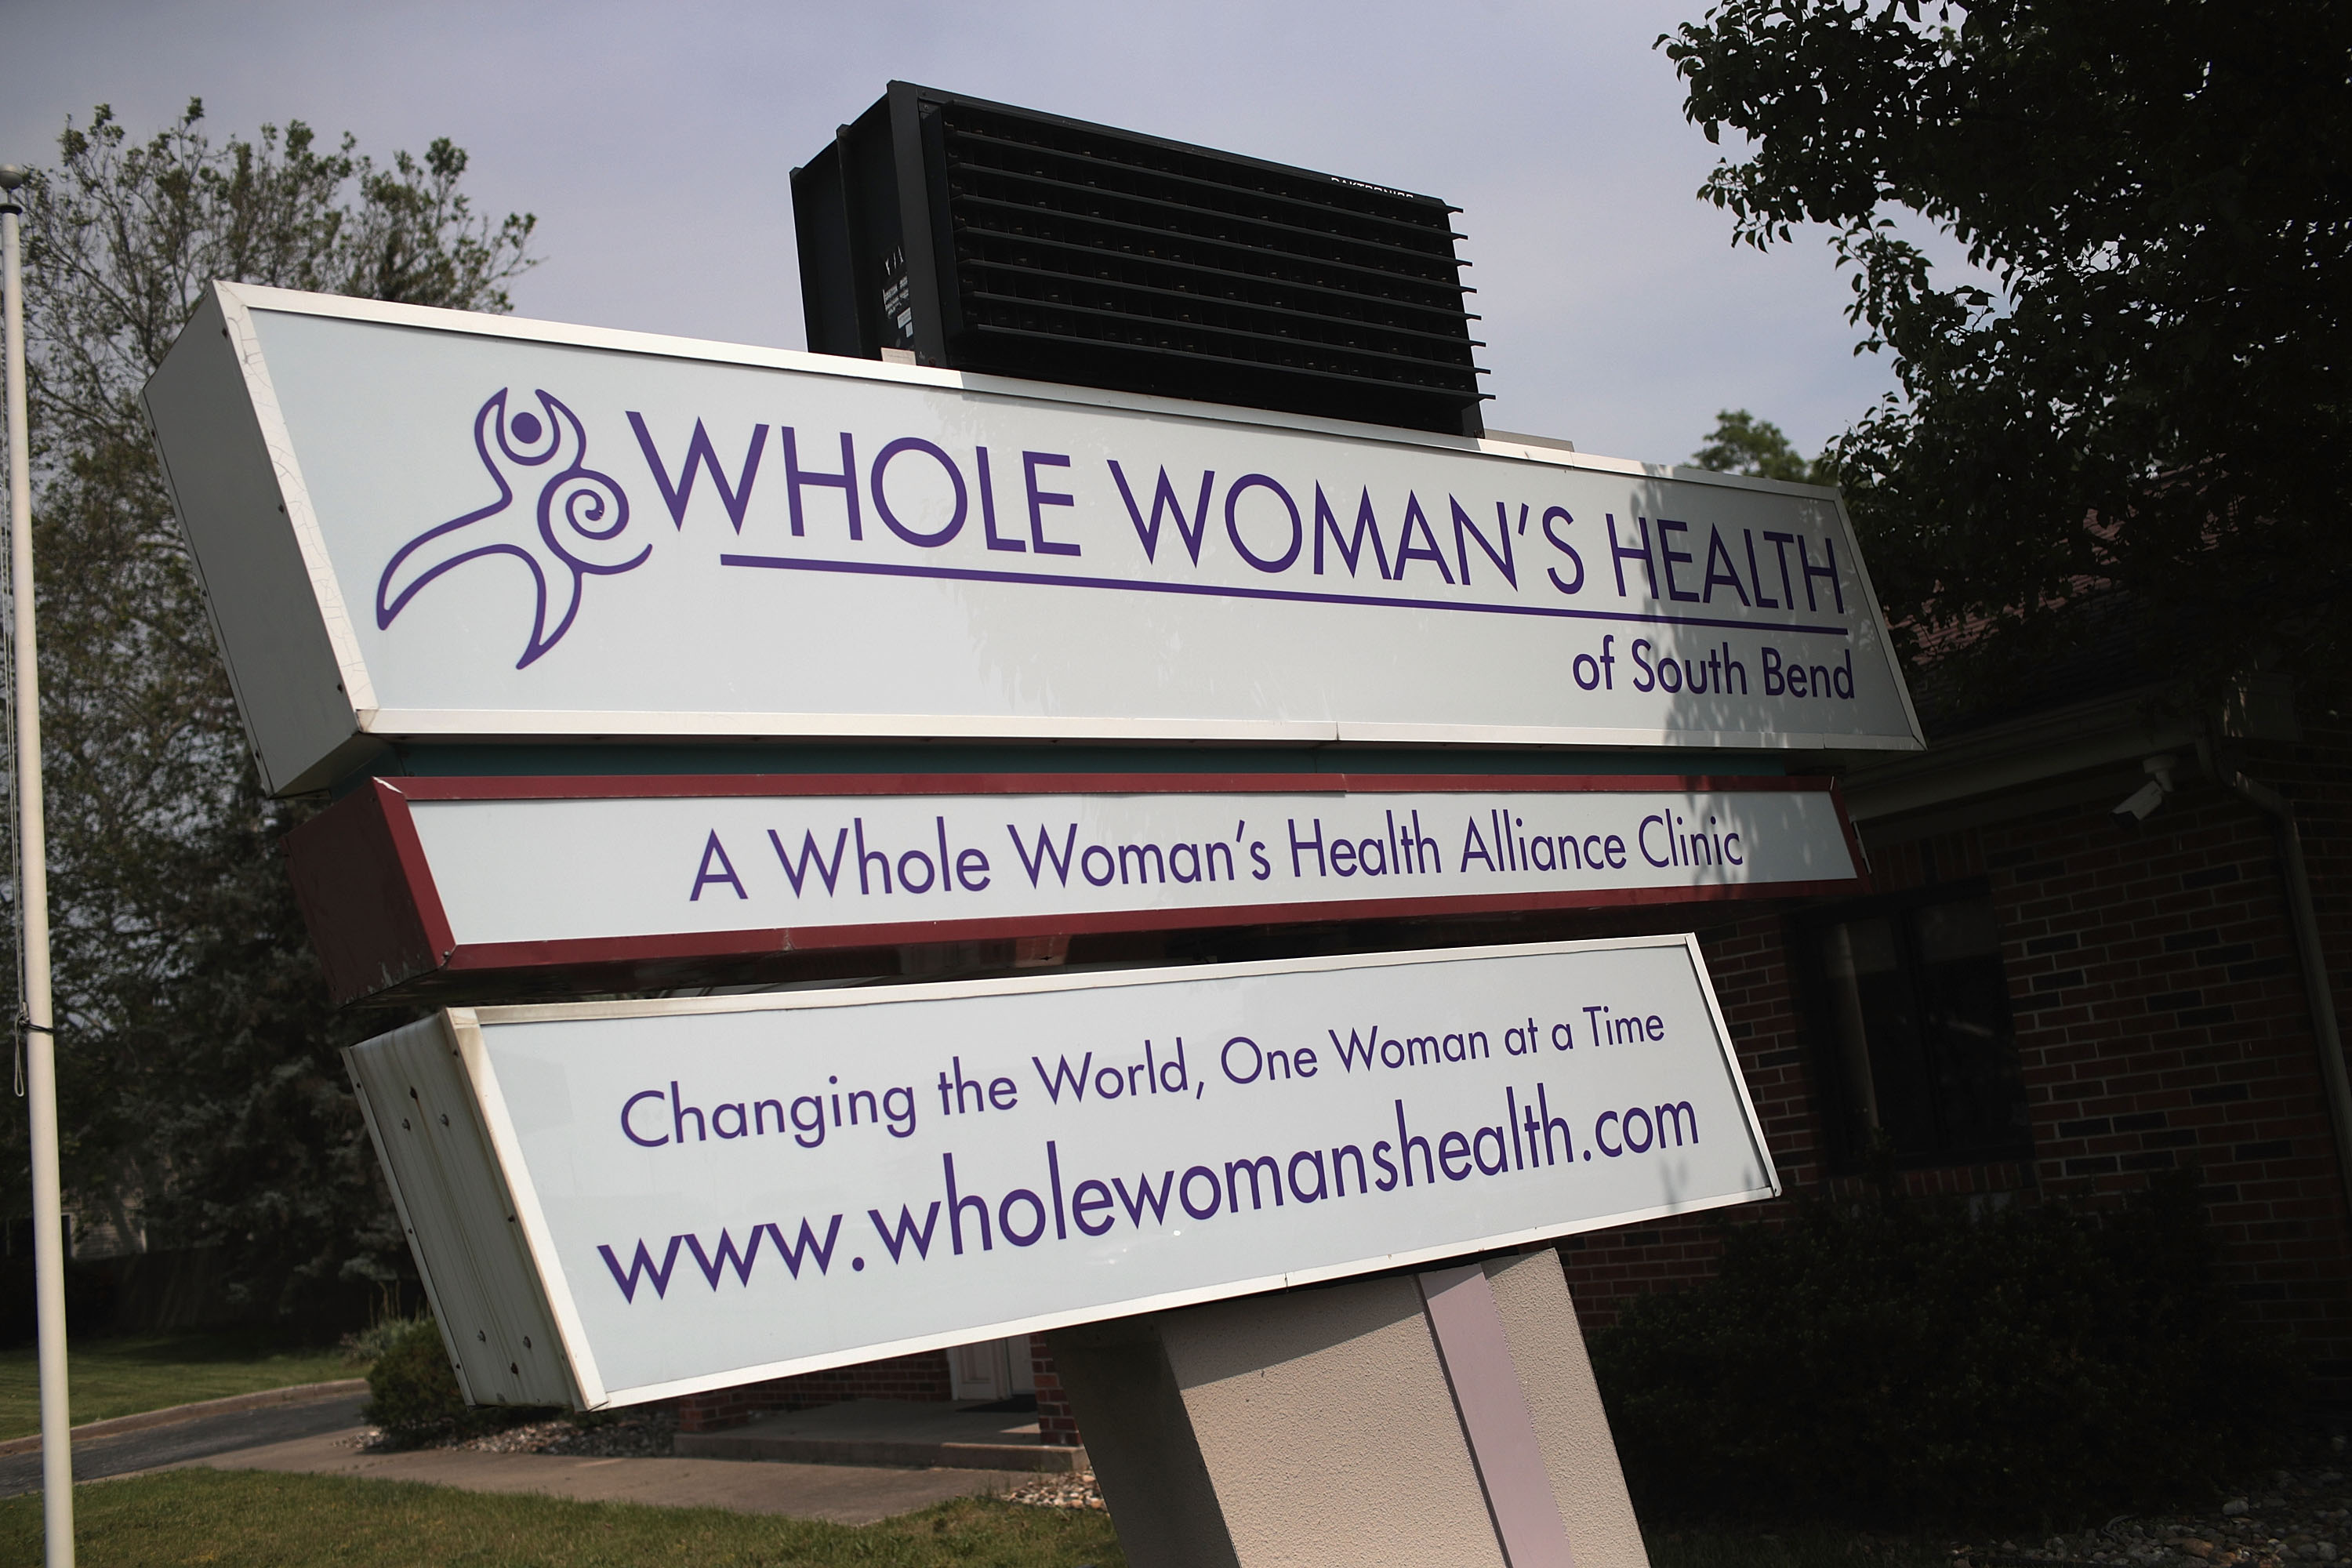 SOUTH BEND, INDIANA - JUNE 19: A sign sits in the front of Whole Woman's Health of South Bend on June 19, 2019 in South Bend, Indiana. The clinic, which provides reproductive healthcare for women including providing abortions is scheduled to open next week following a nearly two-year court battle. Part of the Texas-based nonprofit Whole Woman's Health Alliance, the clinic will offer medication-induced abortions for women who are up to 10 weeks pregnant. (Photo by Scott Olson/Getty Images)